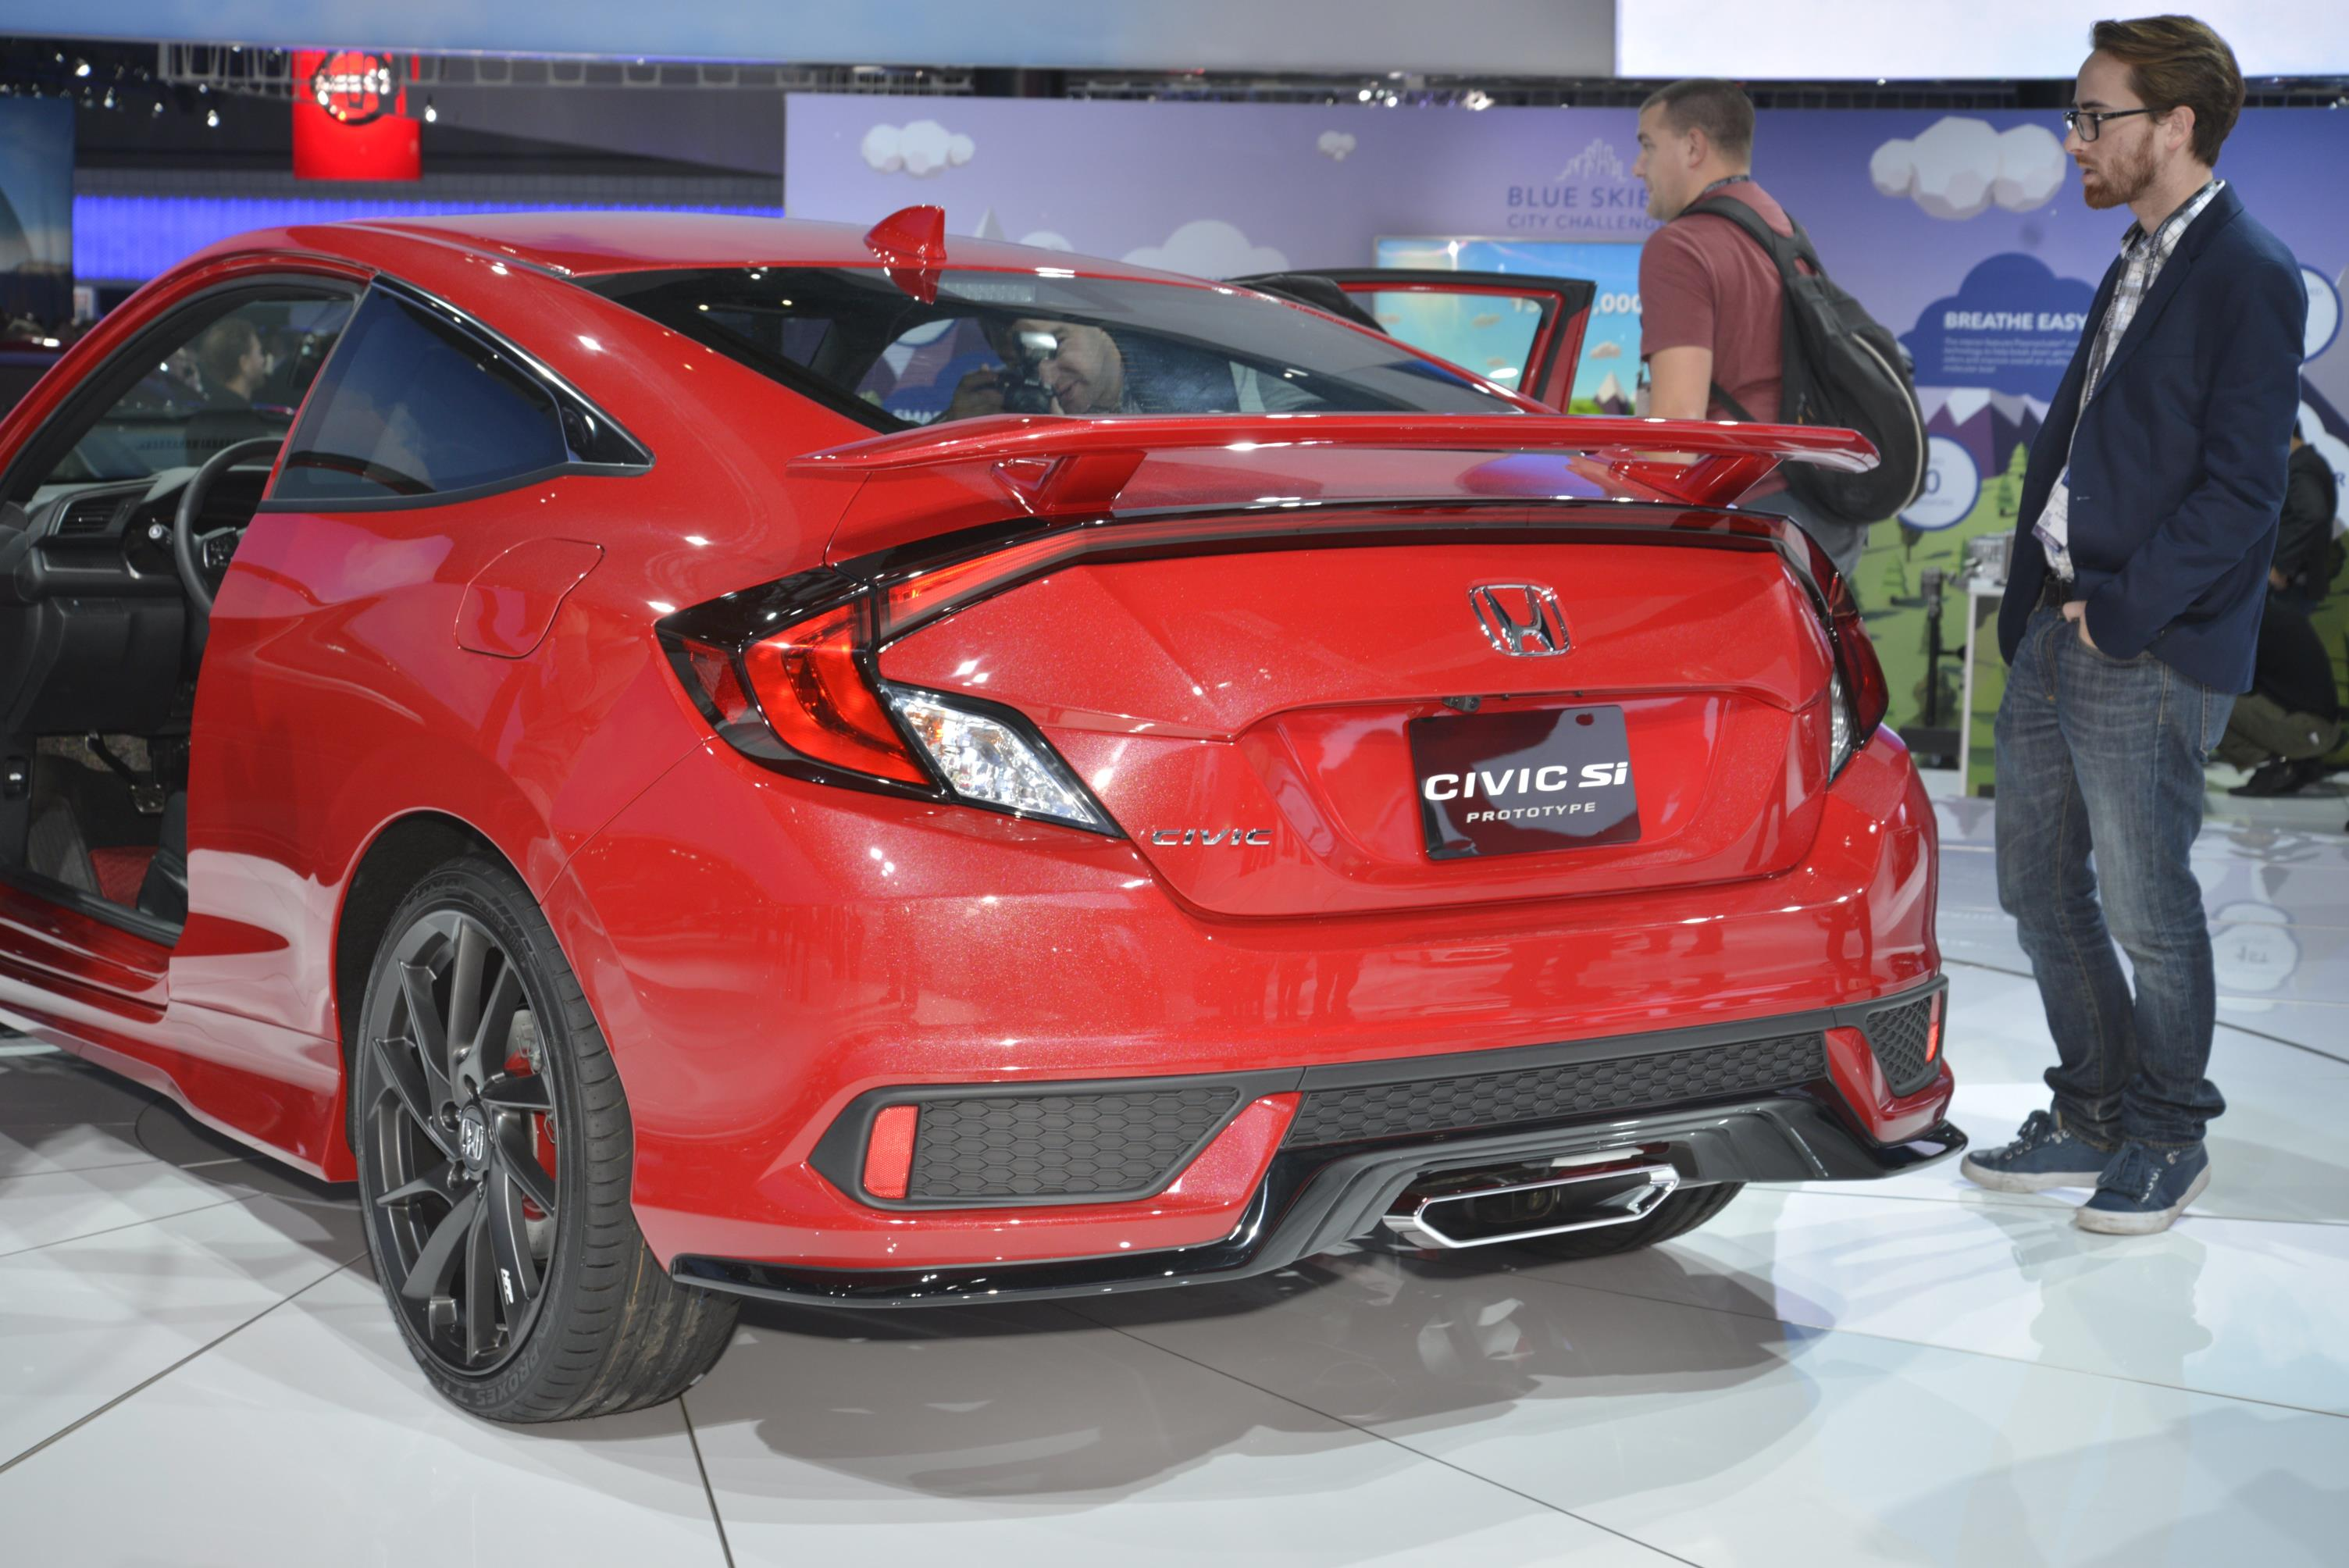 10Th Gen Civic >> Sporty Honda Civic Si Prototype Completes 10th Generation Civic Line